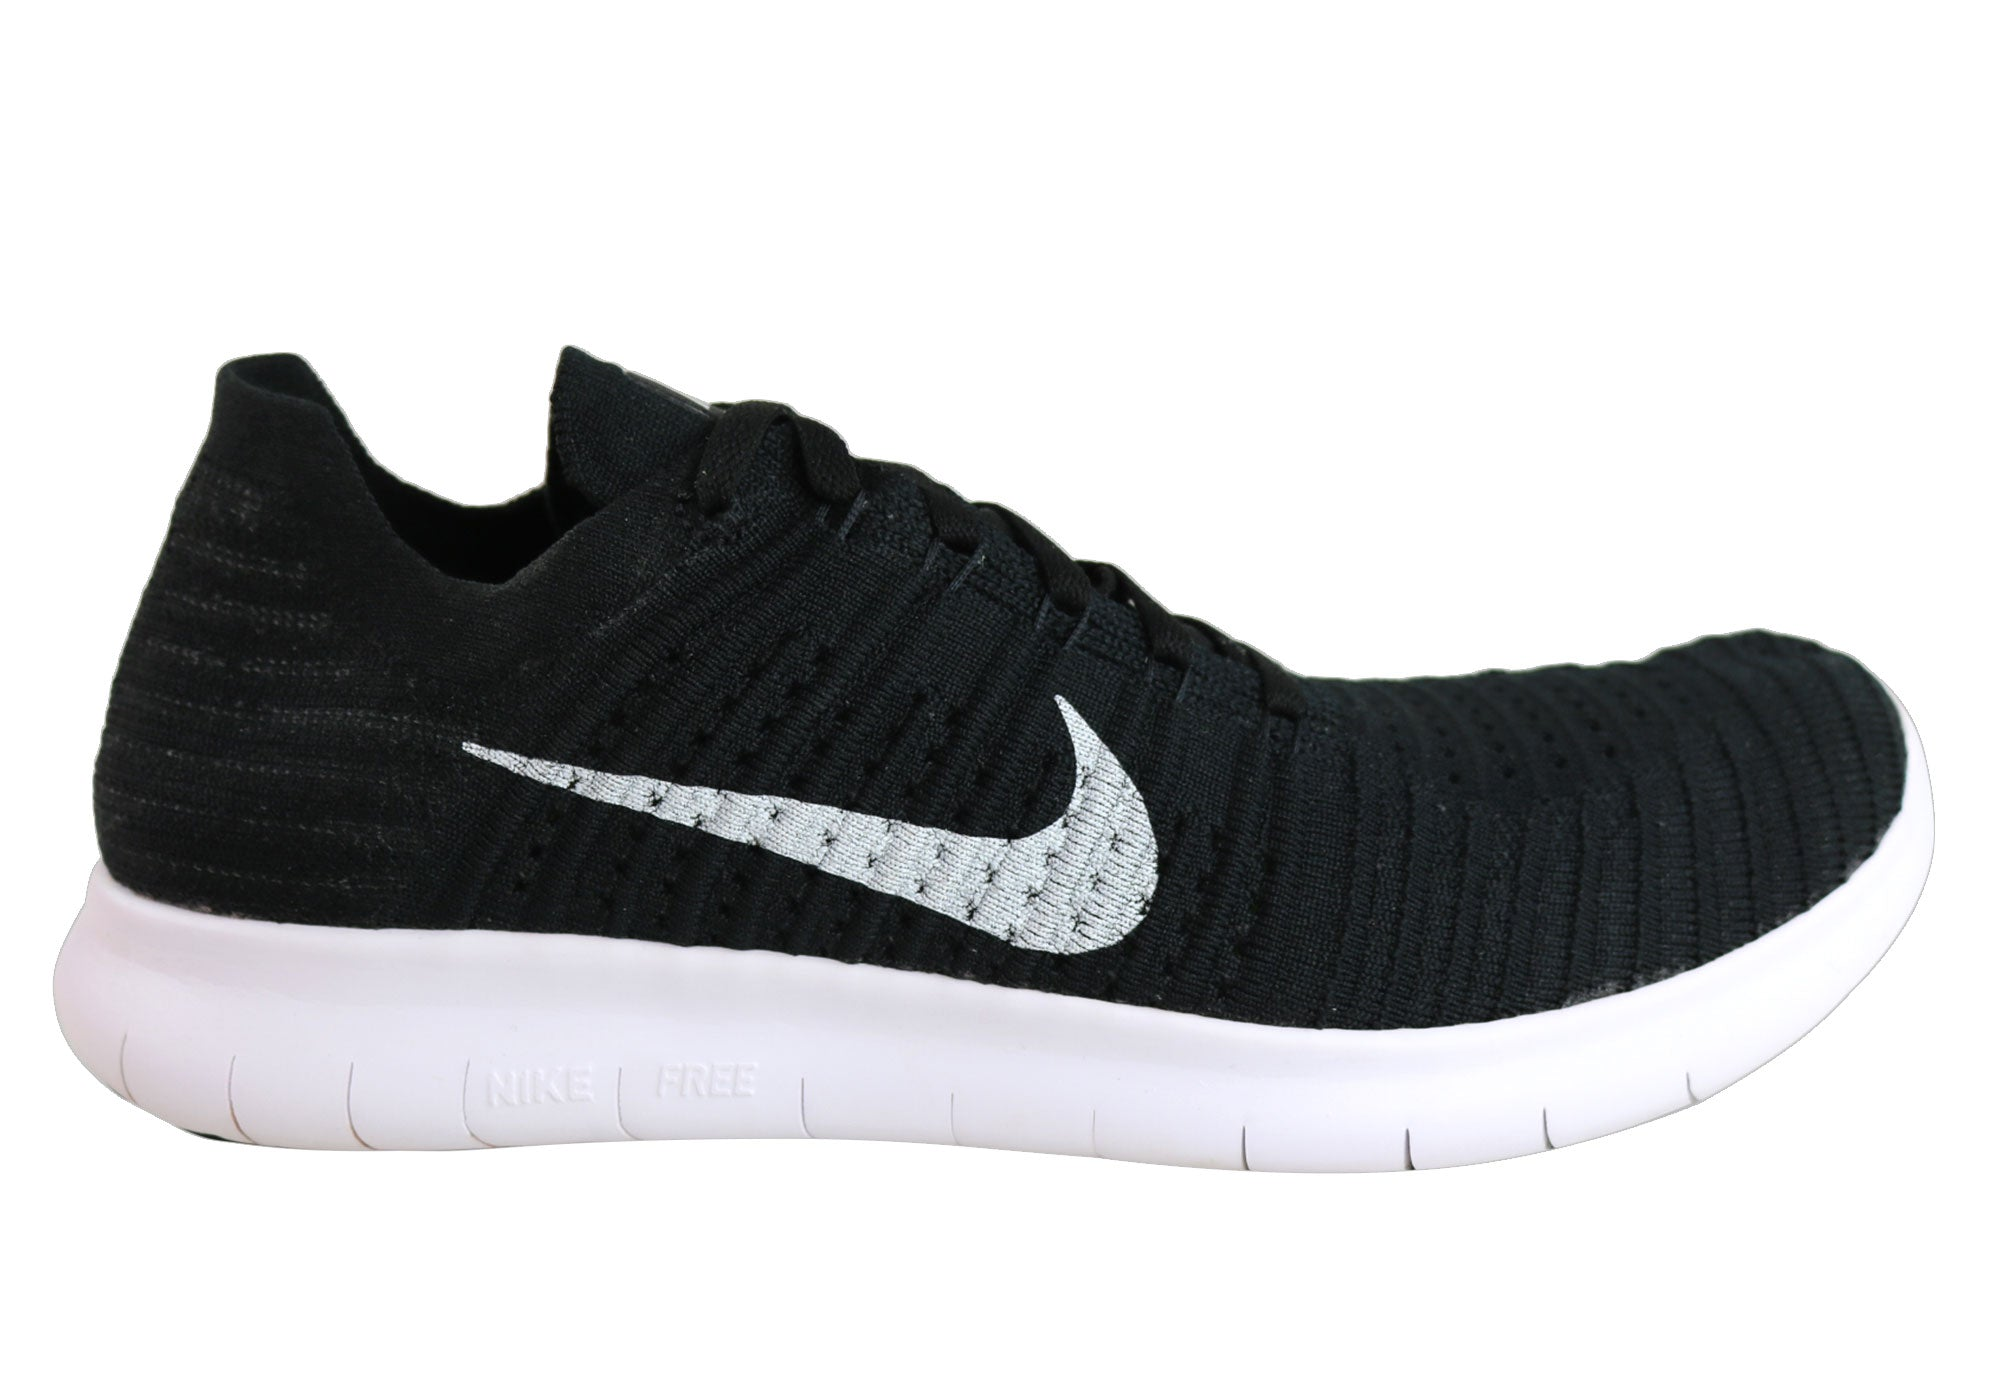 be9ebeeb52b9 Details about Brand New Nike Free Rn Flyknit Mens Comfortable Running Sport  Shoes